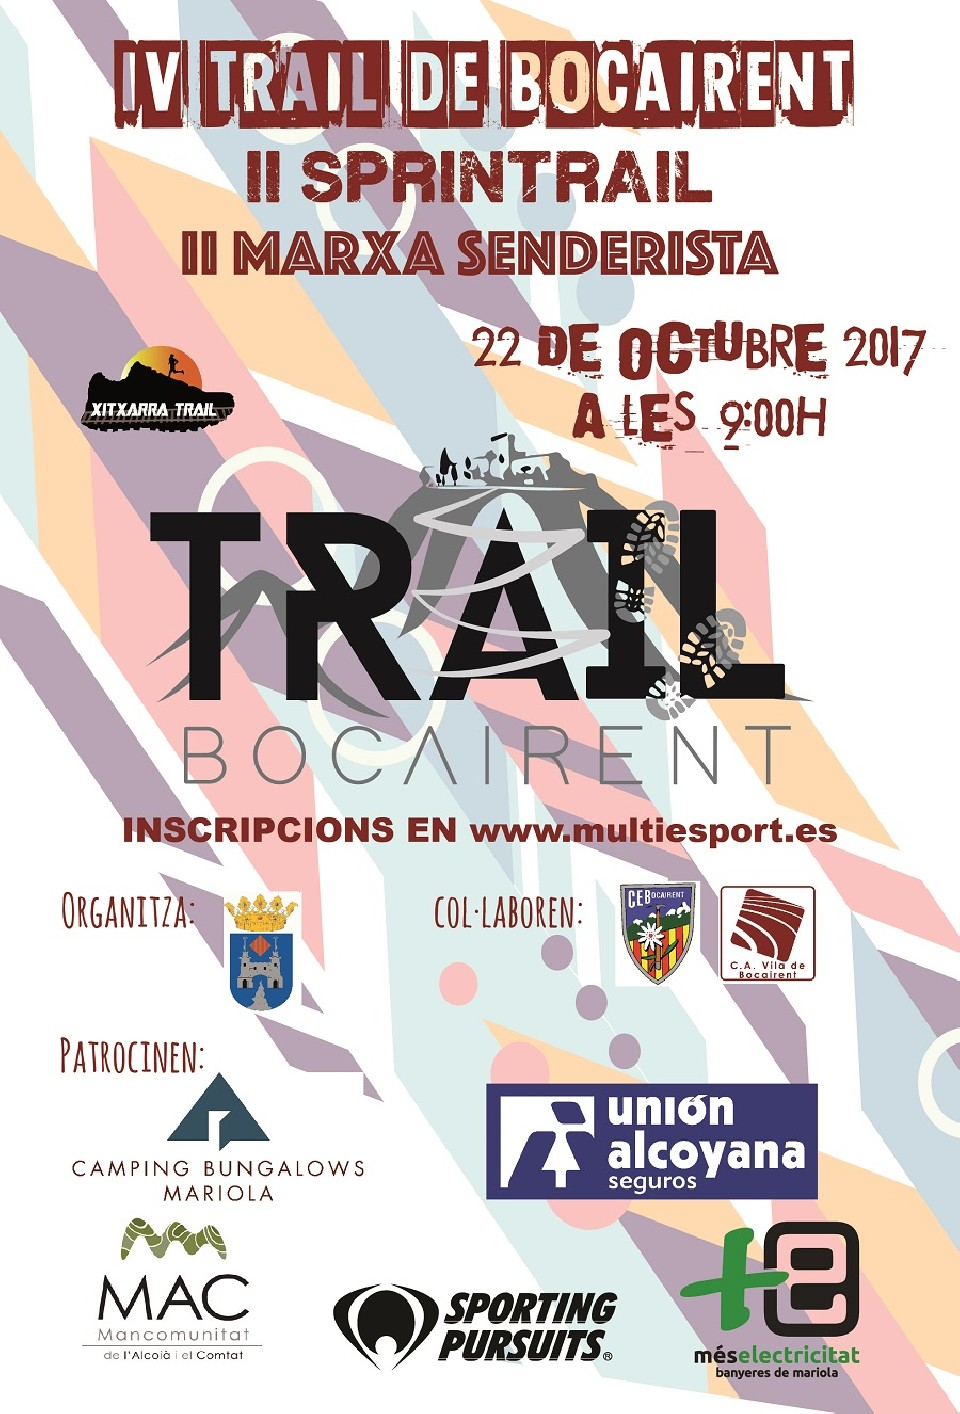 IV Trail de Bocairent